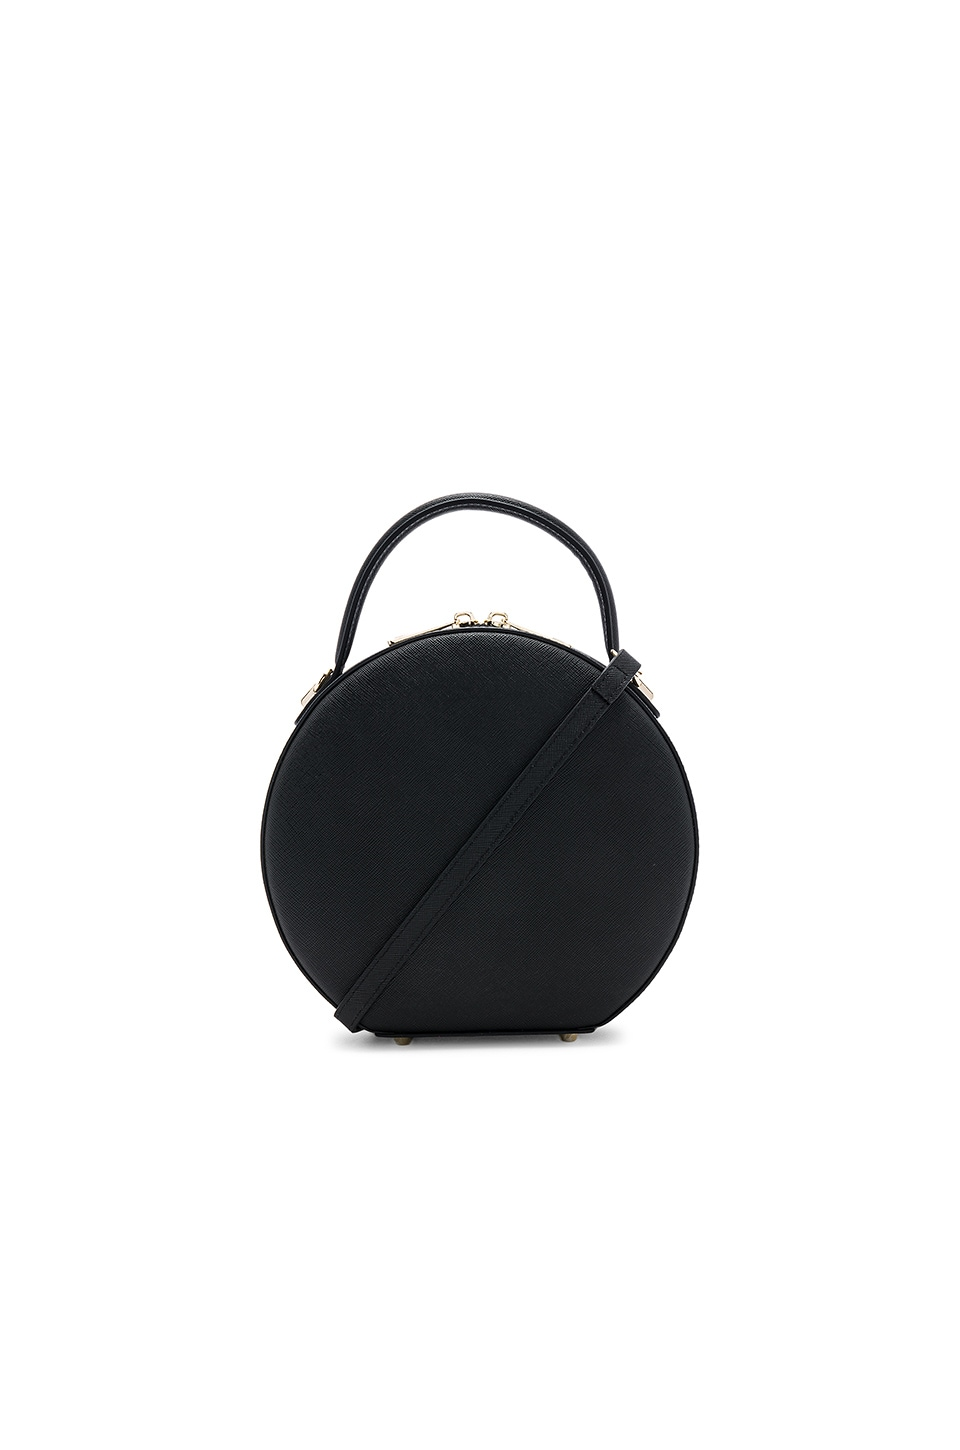 the daily edited Circle Cross Body Bag in Black